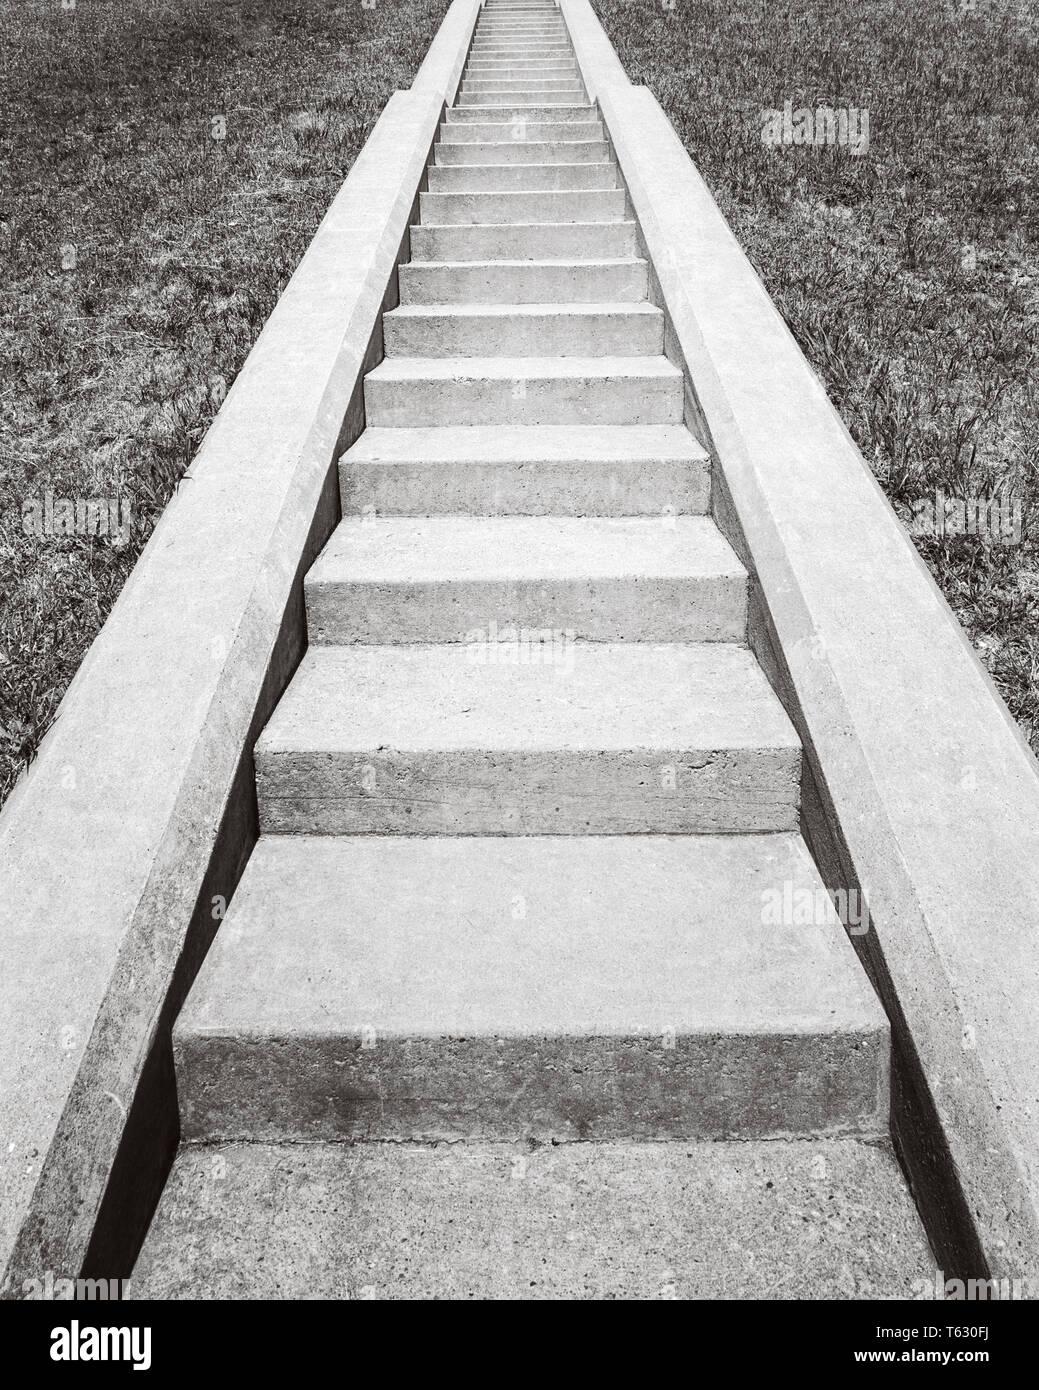 1960s VIEW AT BOTTOM OF SET OF CONCRETE STAIRS  LOOKING UP TO THE TOP - s14723 HAR001 HARS CONCEPT CONNECTION CONCEPTUAL STILL LIFE STEEP SYMBOLIC CONCEPTS GROWTH IDEAS LOOKING UP BLACK AND WHITE CONCRETE HAR001 OLD FASHIONED REPRESENTATION - Stock Image